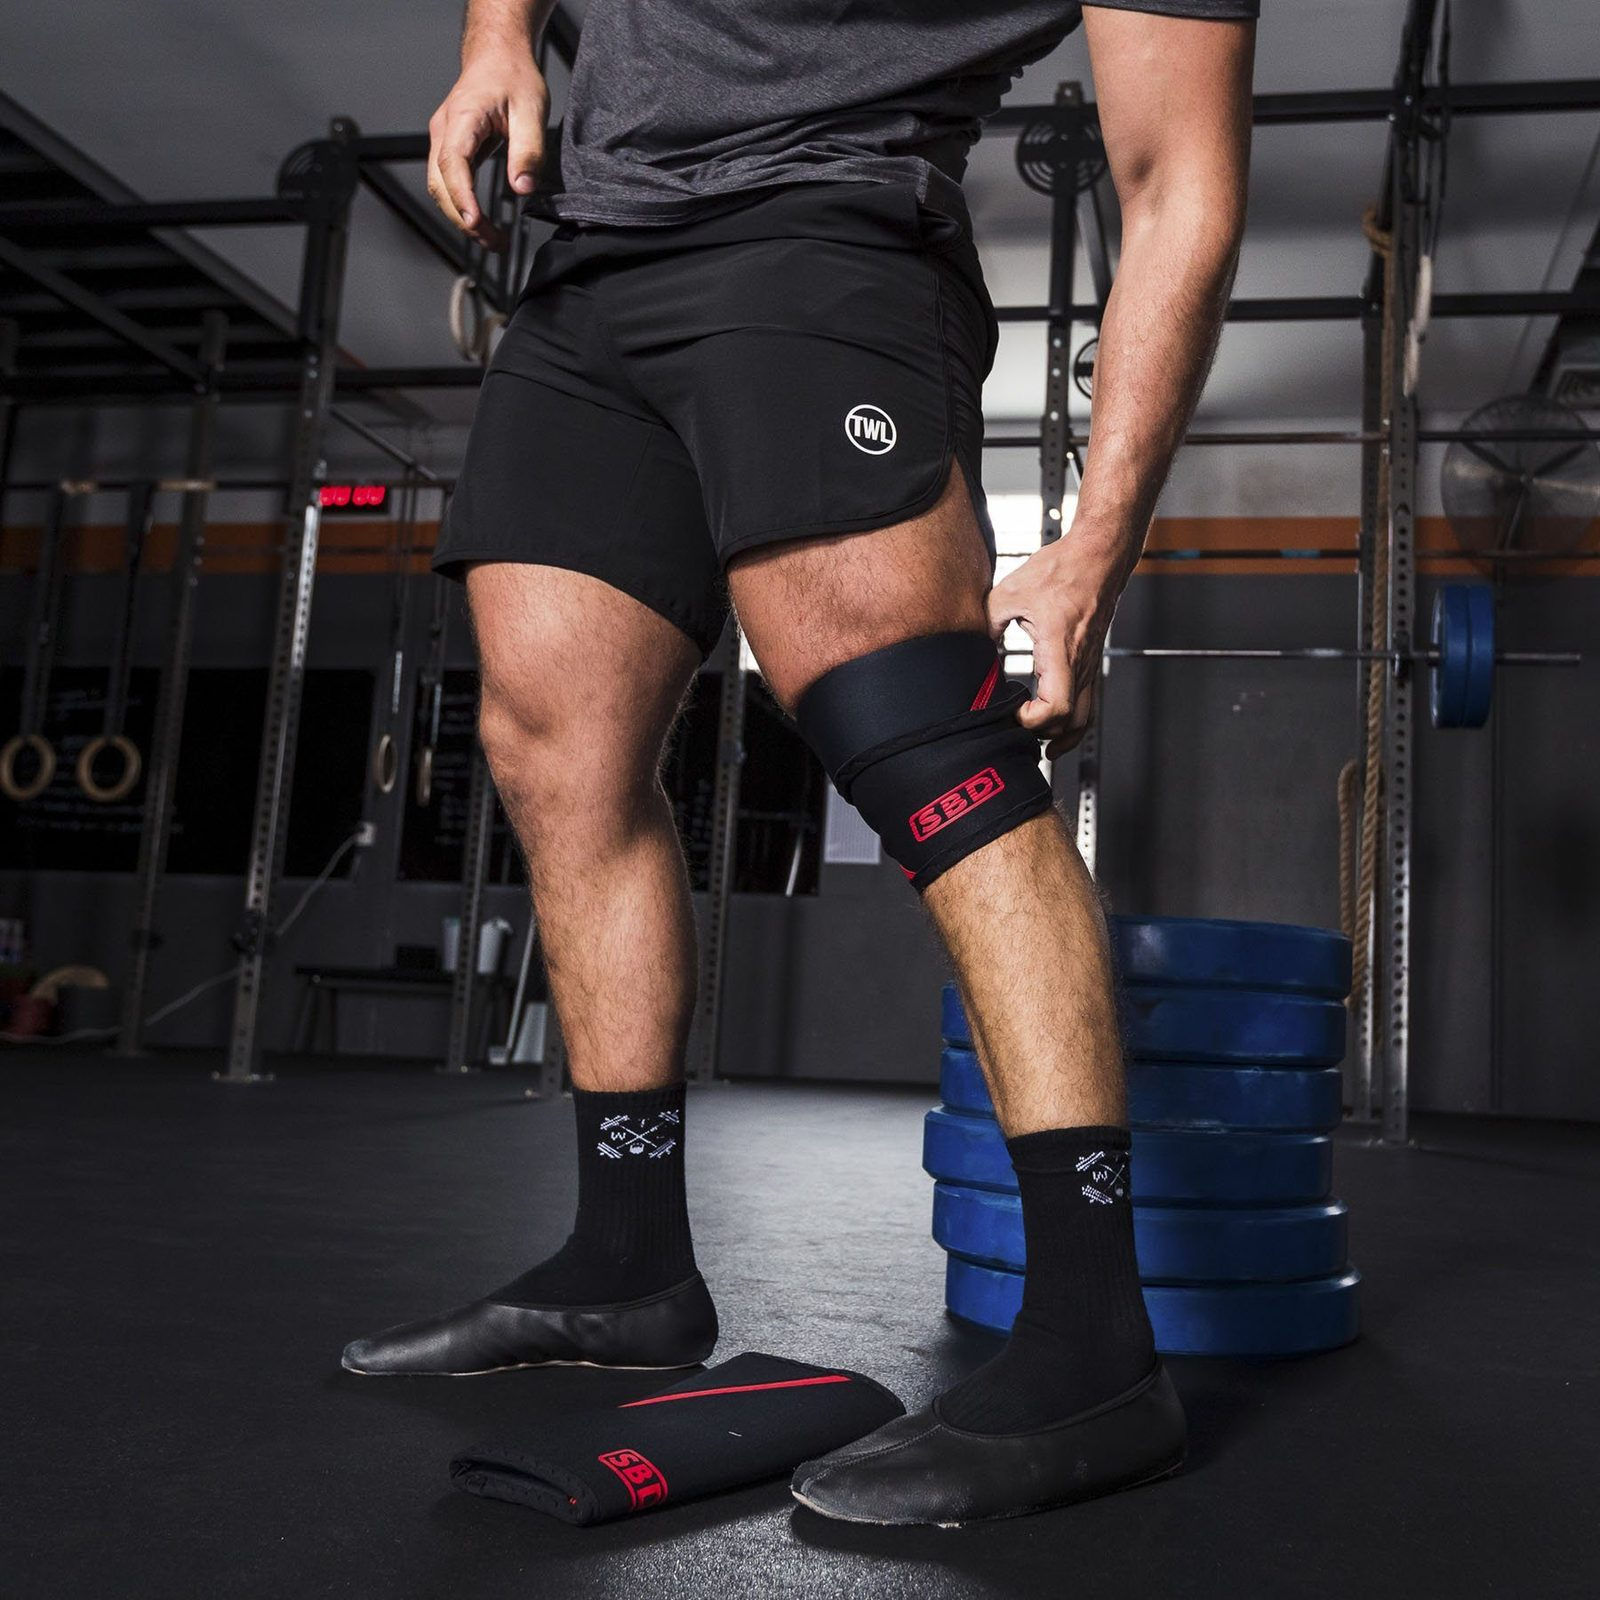 How to put on Performance Knee Sleeves